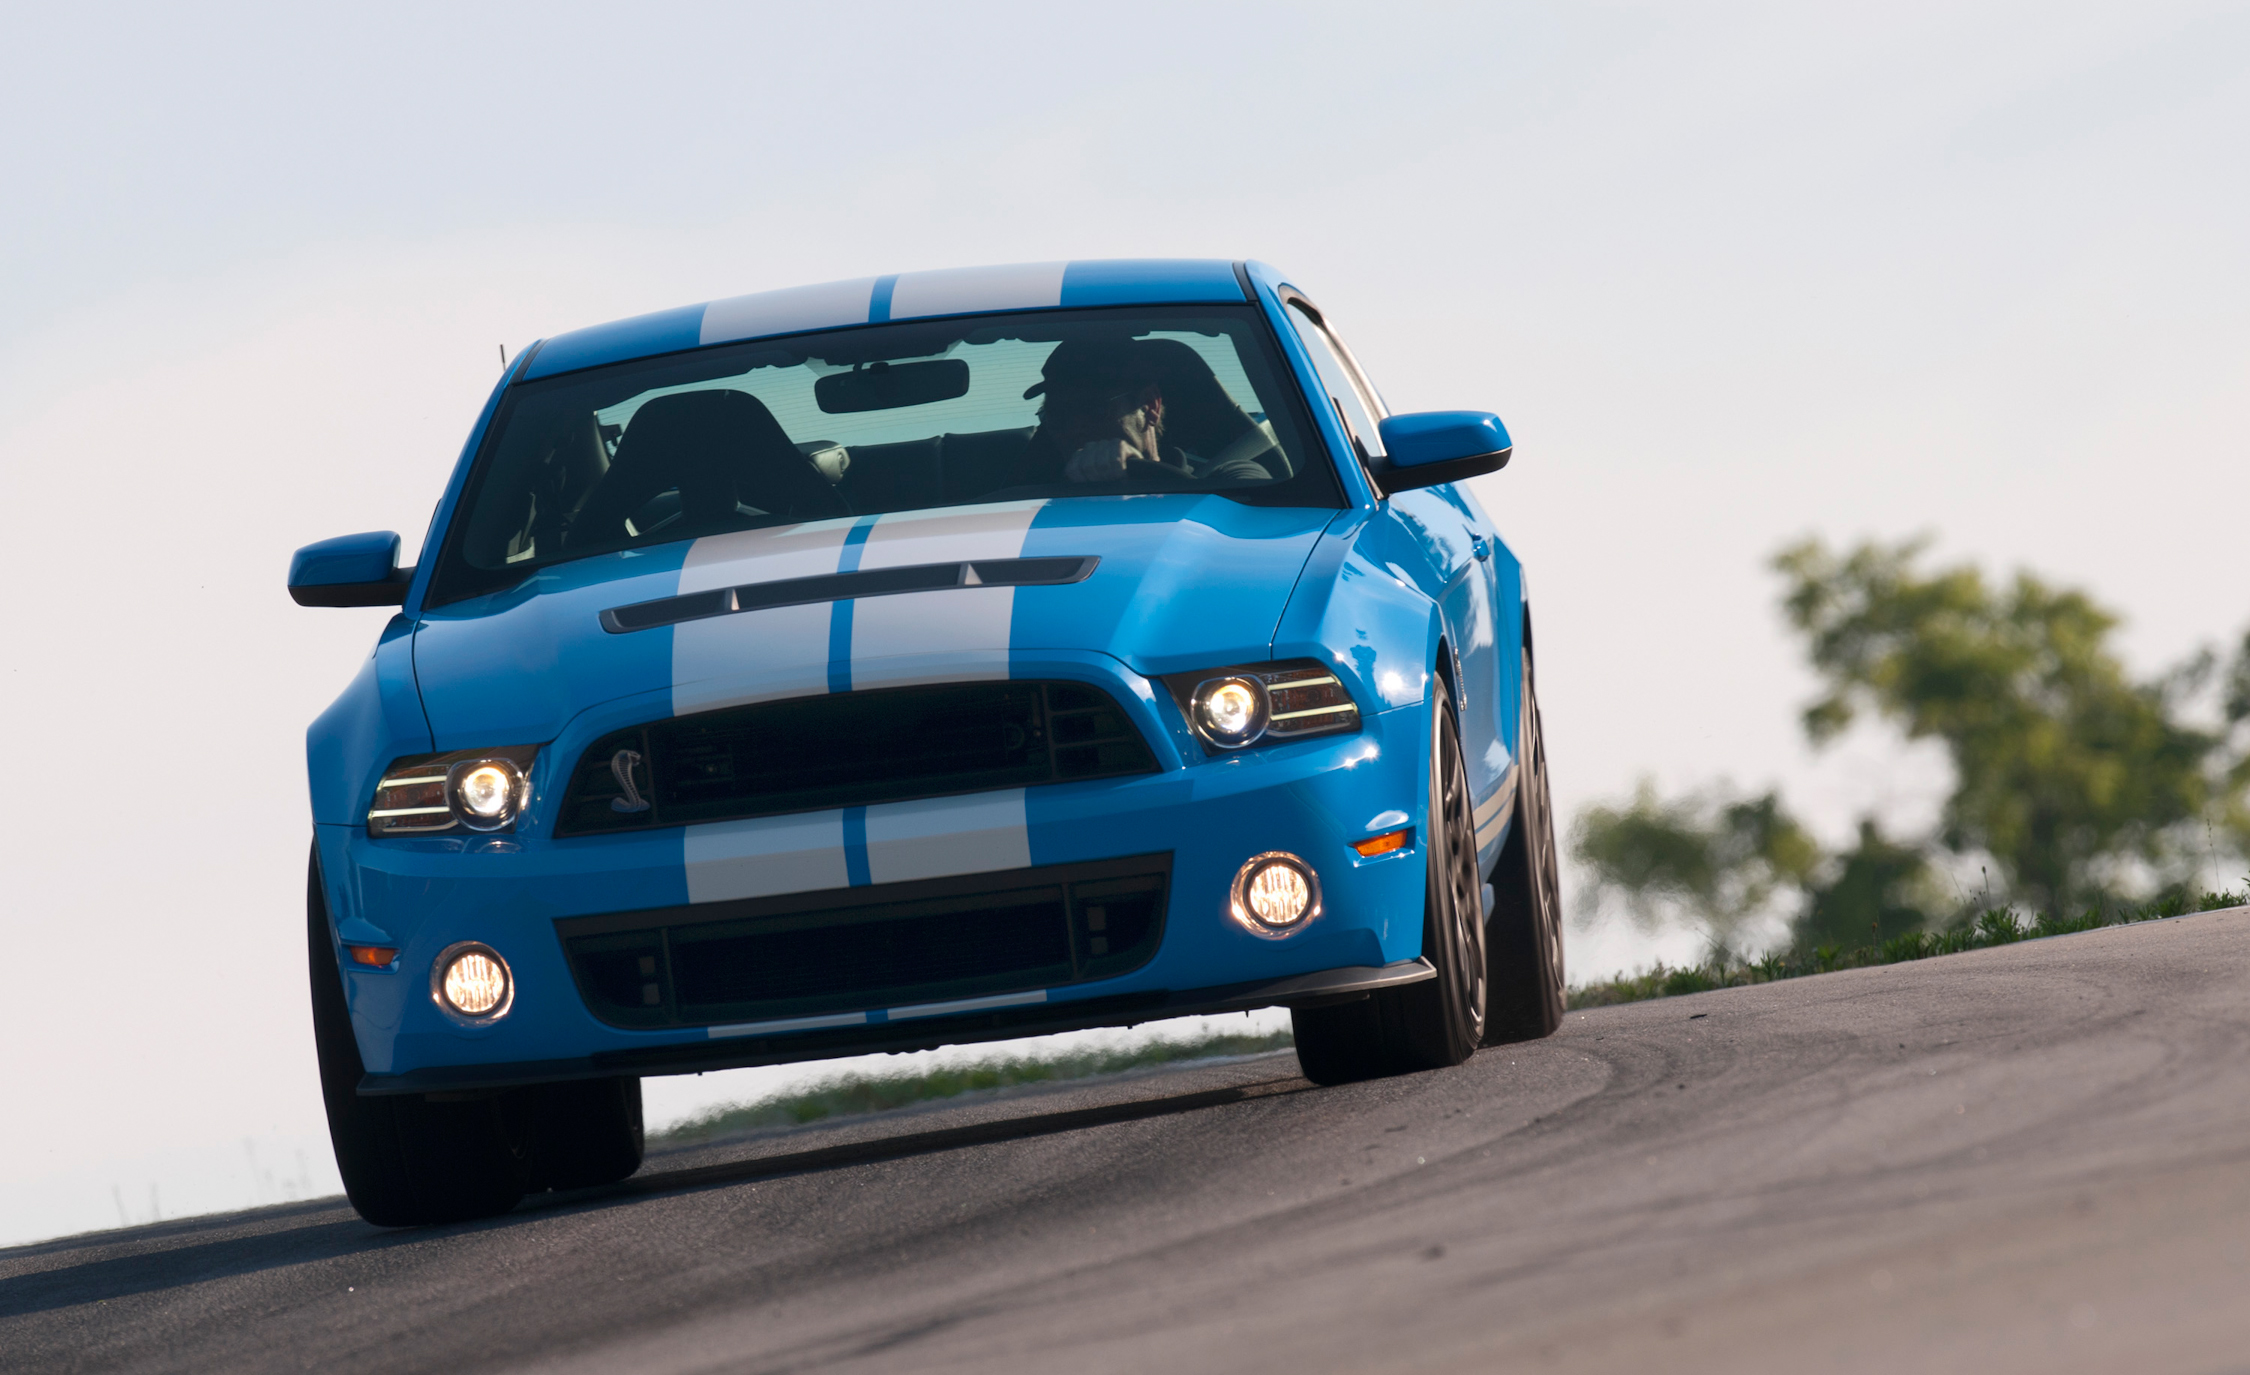 2013 Ford Mustang Shelby GT500 Blue Test Drive Front Preview (View 33 of 47)